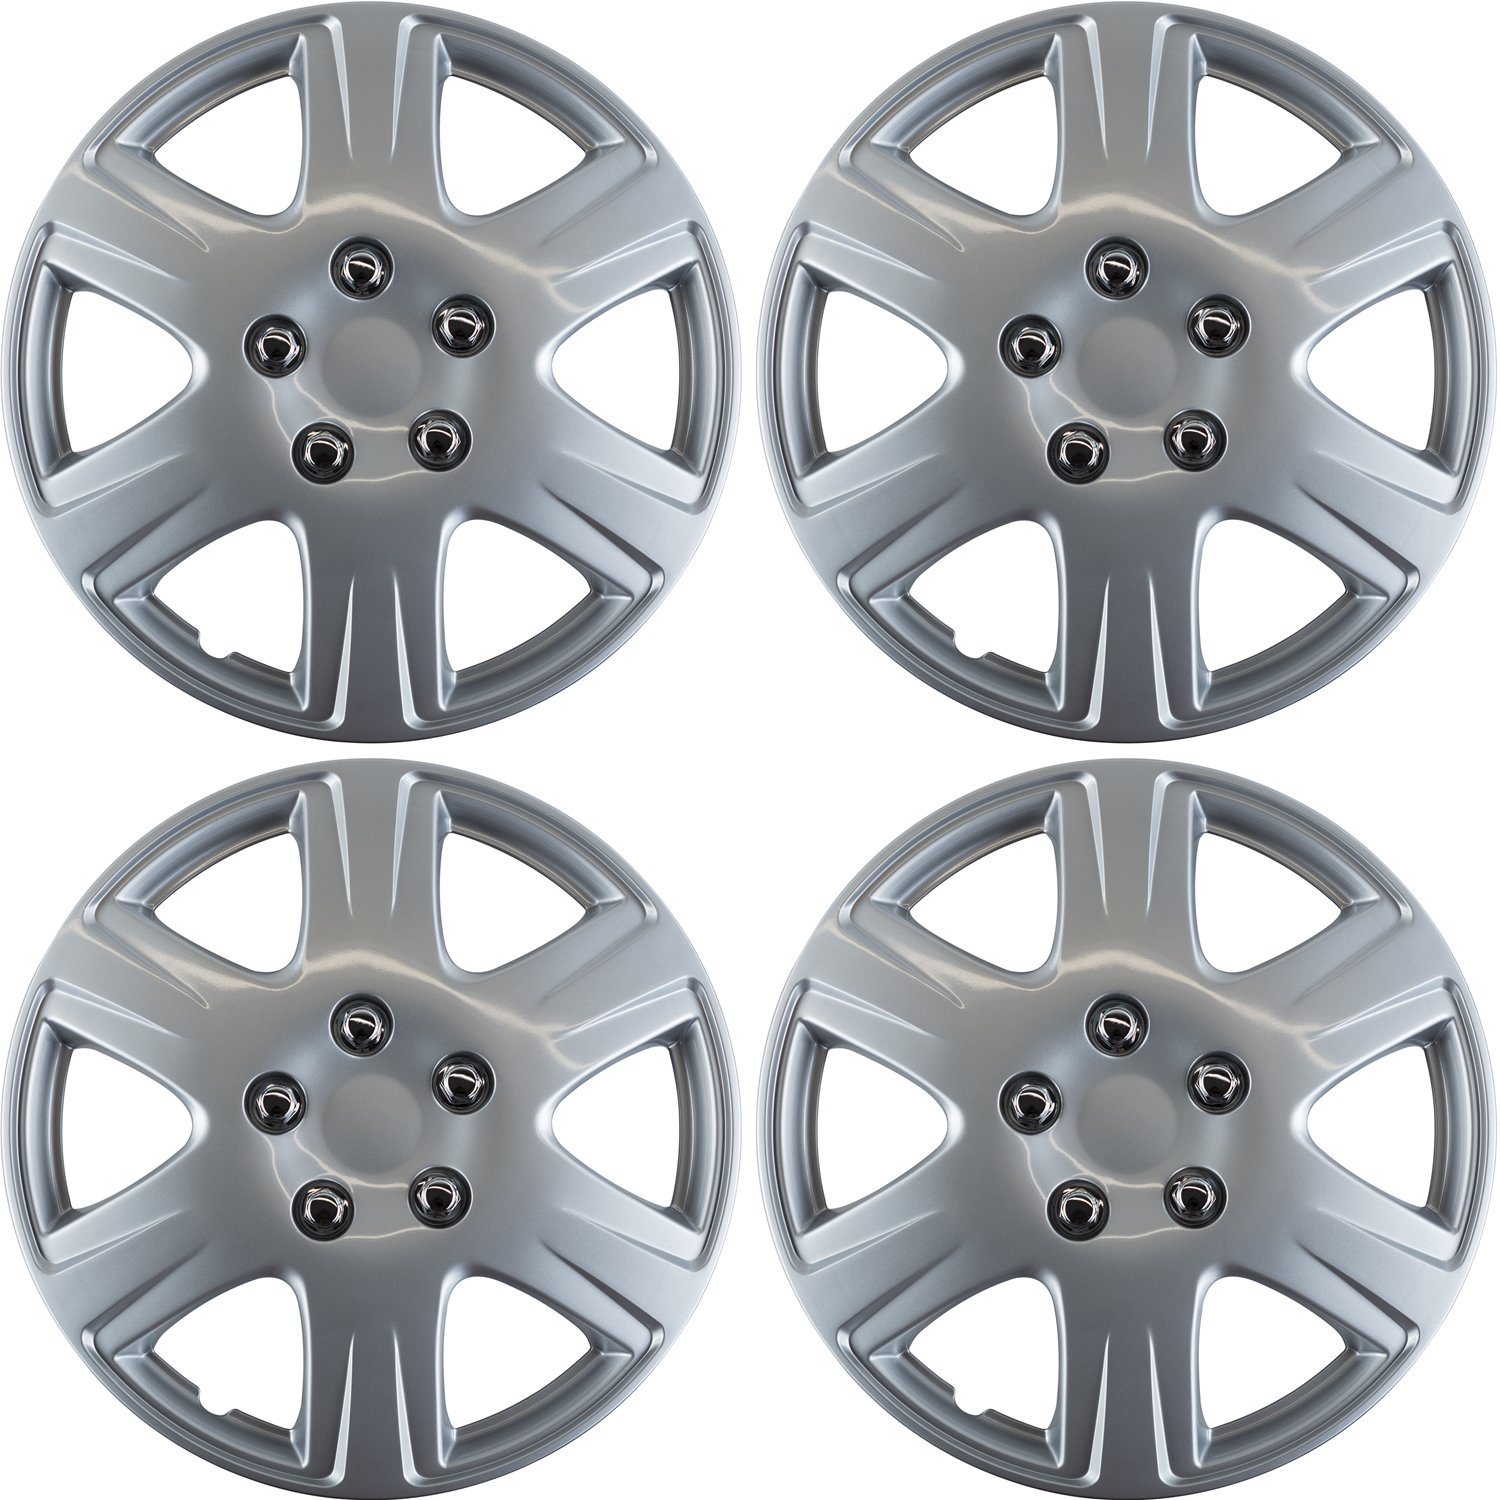 Amazon com hubcaps for toyota corolla pack of 4 wheel covers 15 inch 6 spoke snap on silver automotive